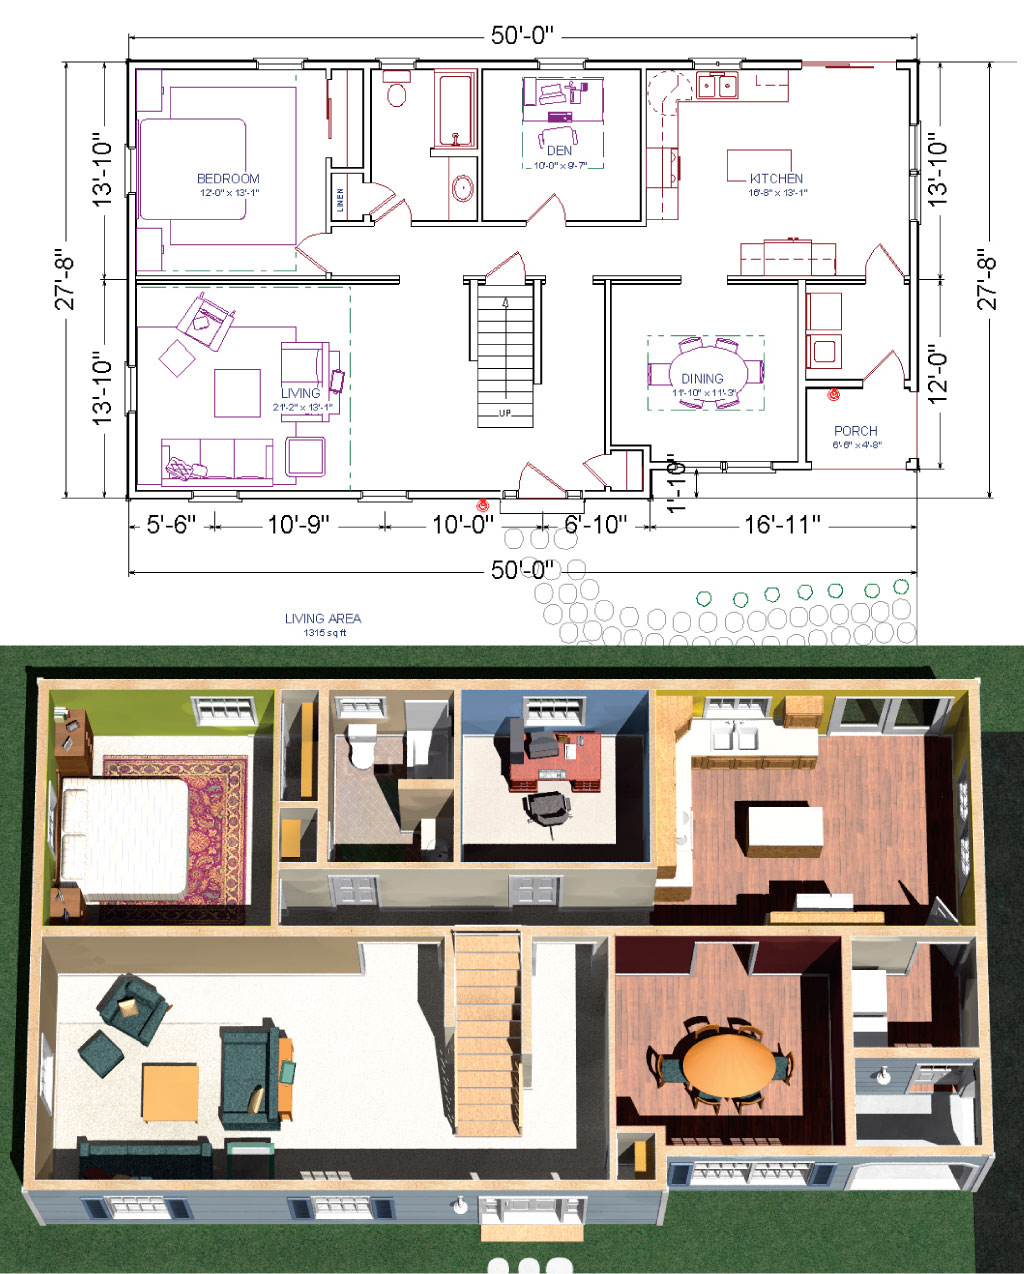 Yamouth modular cape modular home simply additions for Cape cod modular home floor plans